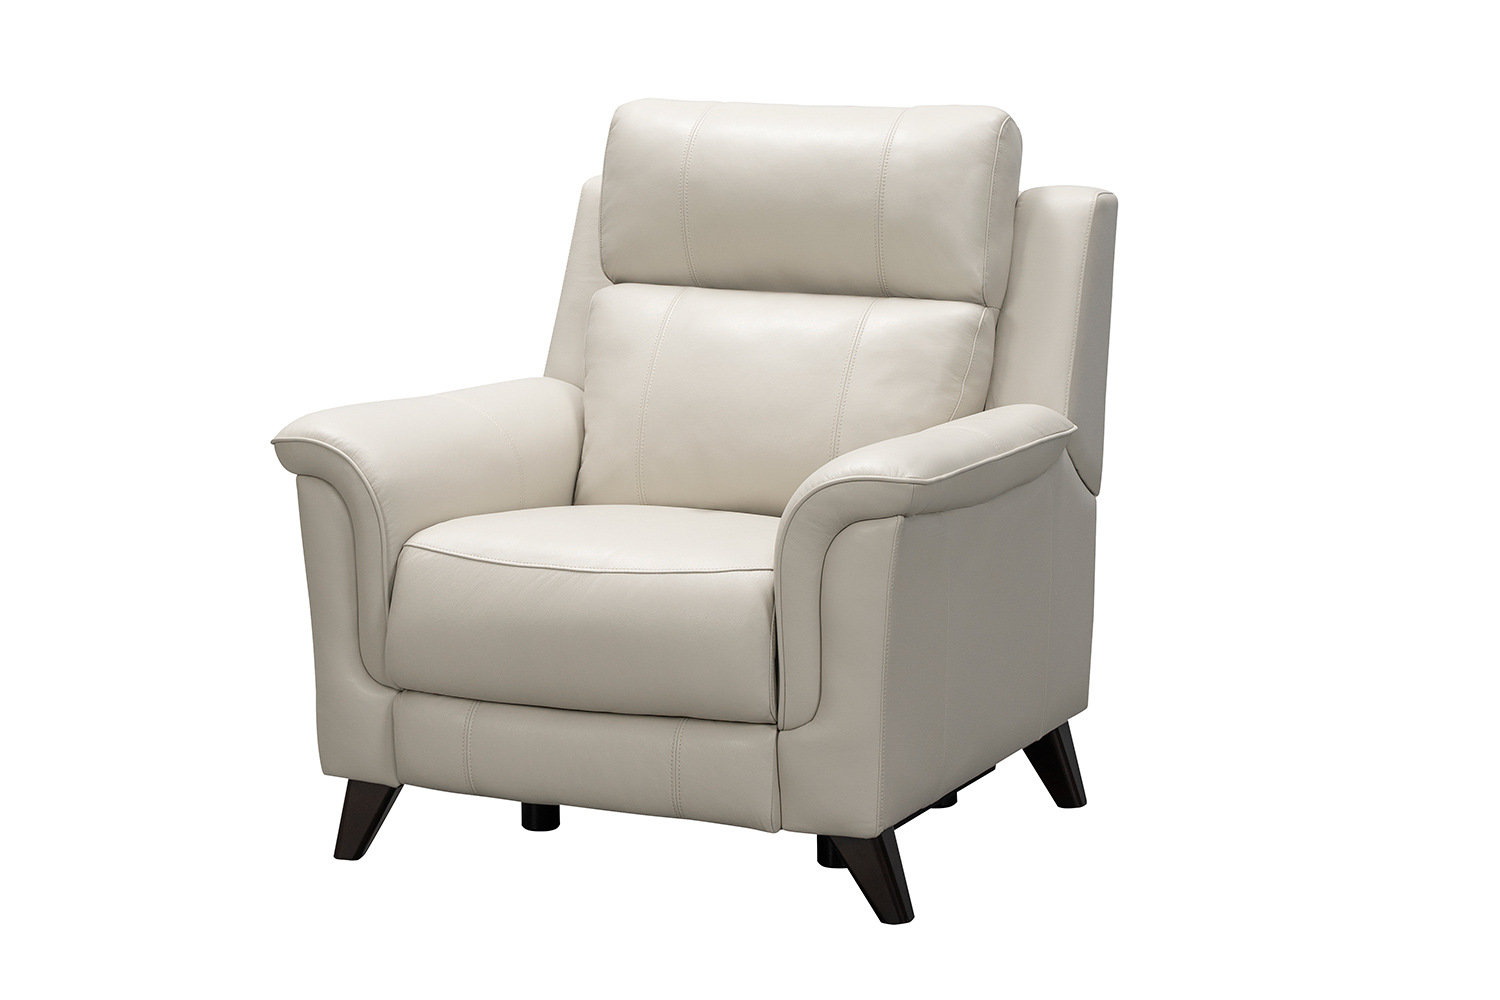 Barcalounger Kester Power Recliner Chair with Power Head Rest - Laurel Cream/Leather match